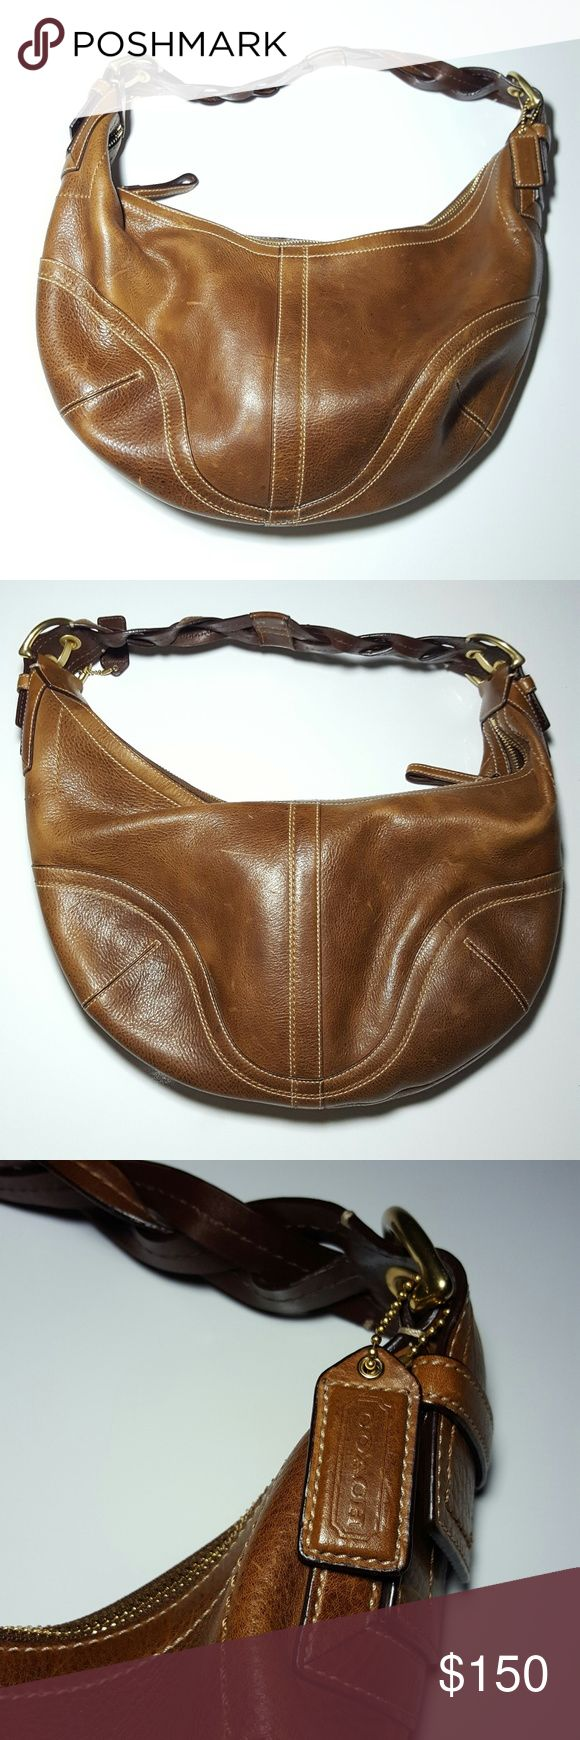 ♀ COACH womens full grain leather shoulder bag RARE COACH Bag Soho Braided Pebbled Leather Hobo shoulder Bag Purse Handbag  100% authentic, pre-owned Color: Tobacco Measurements: See photo  FEATURES: Full grain leather--the variations in the grain are characteristics of natural cowhide Ages beautifully and has some scratches from normal wear Interior has 3 pockets, one with a zipper  Check out my other Burberry, Zara, Nike, Under Armour, J Crew, Vince Camuto, TOPSHOP, Coach, Michael Kors…